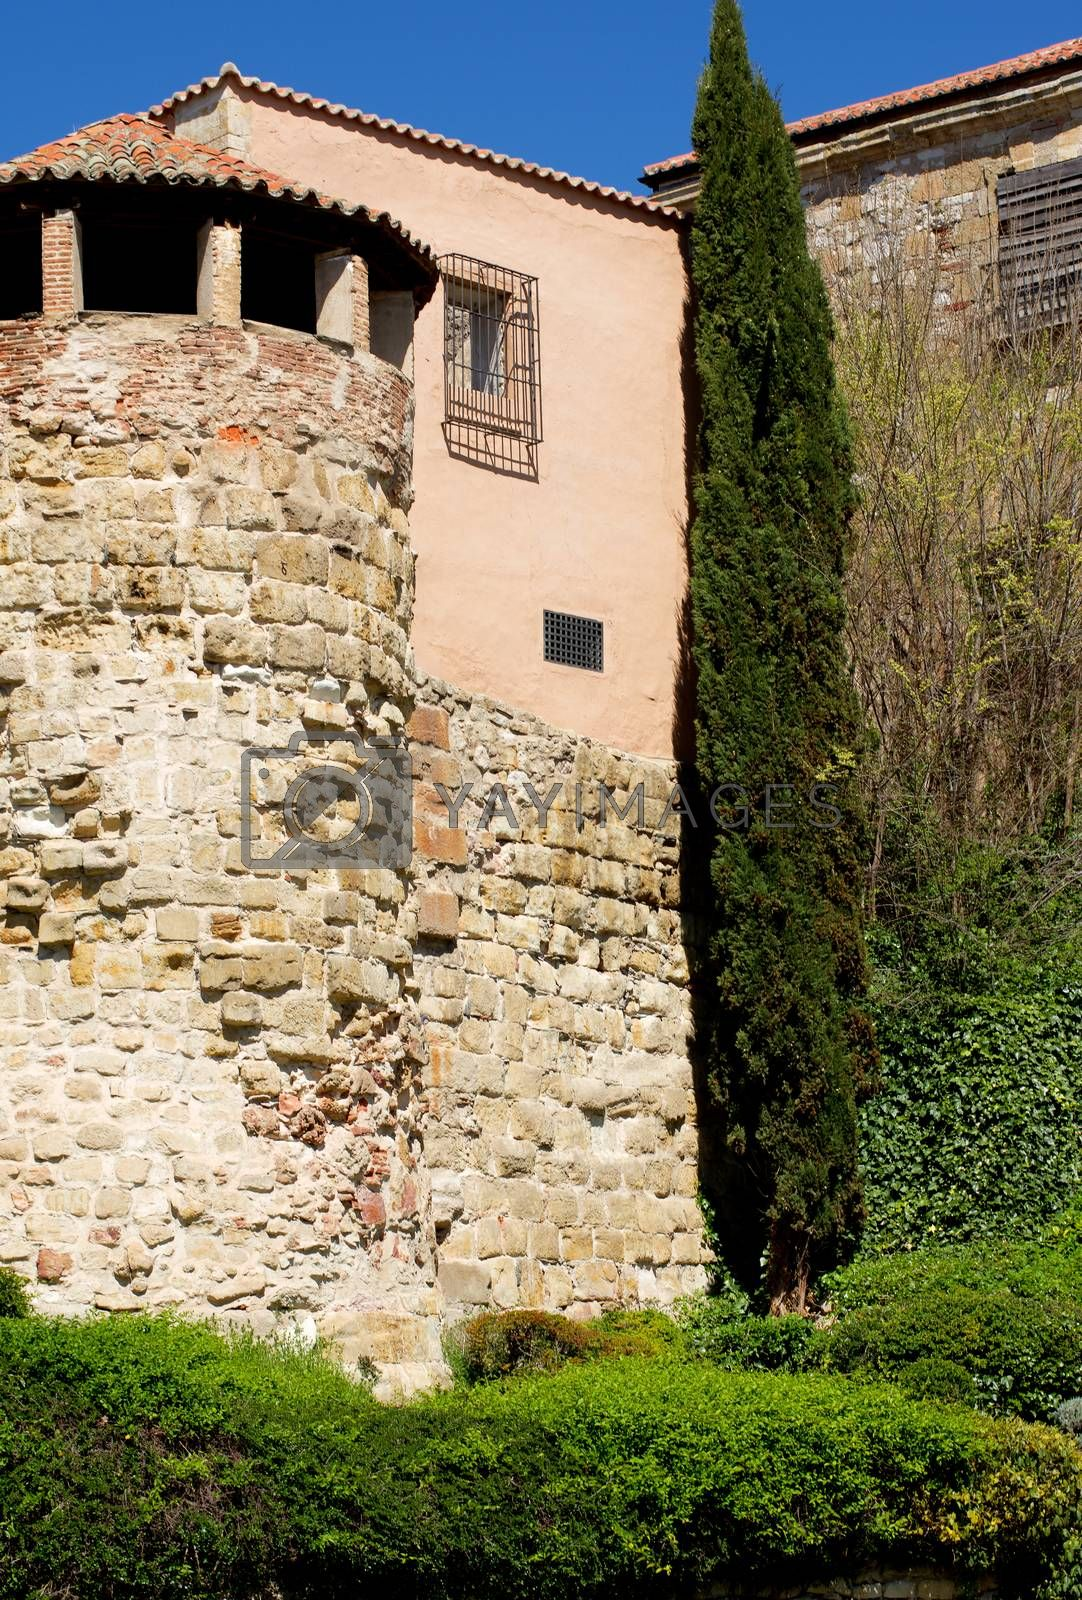 Obsolete House with Tower, Gallery and Surrounded Wall with Plants Outdoors. Salamanca, Spain